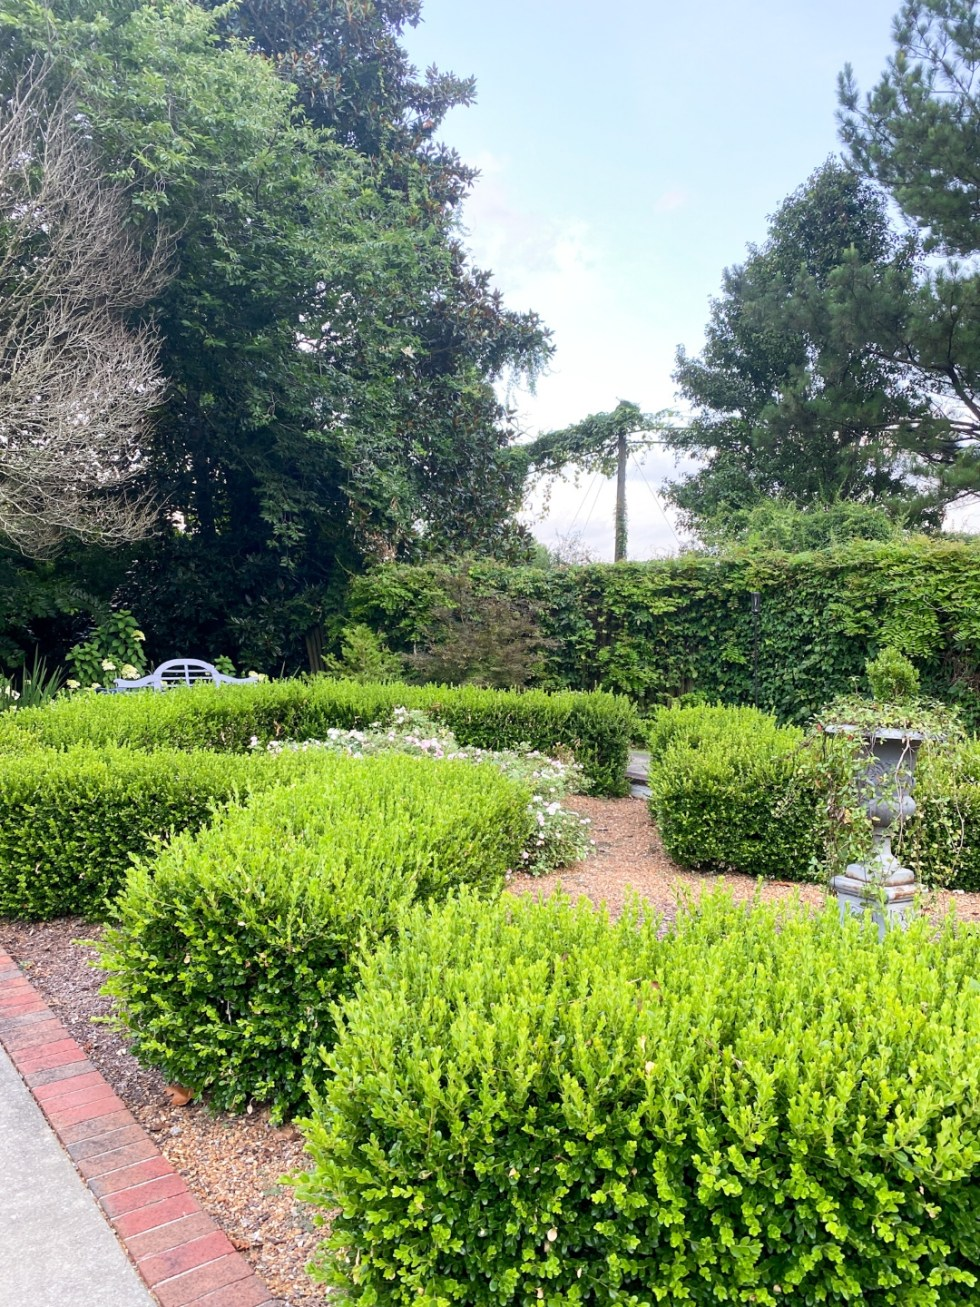 Top 10 Best Things to Do in Edenton, NC: A Complete Travel Guide - I'm Fixin' To - @imfixintoblog | Edenton Travel Guide by popular NC travel guid, I'm Fixin' To: image of a hedge maze.